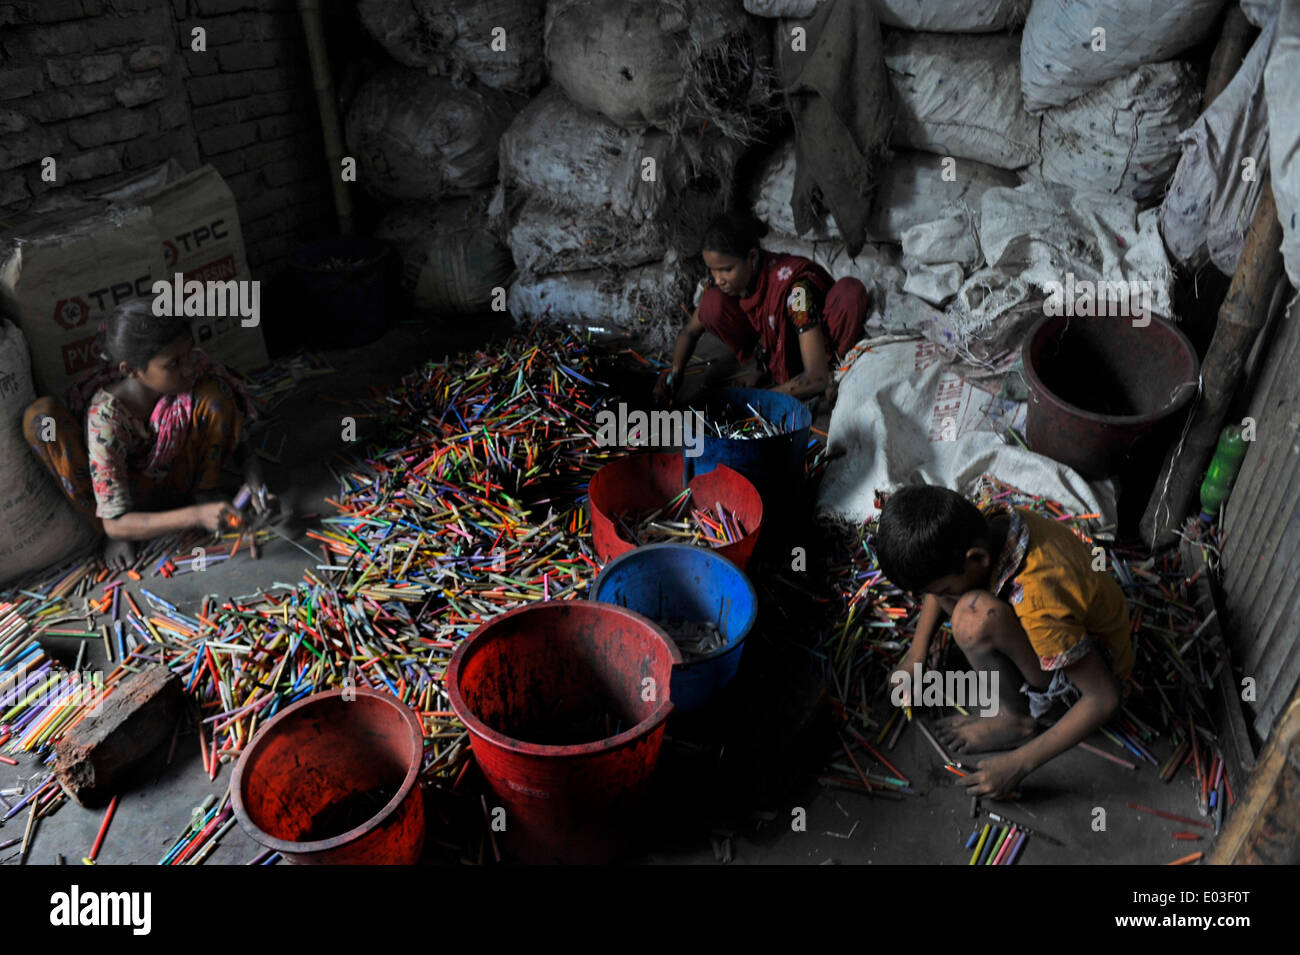 DHAKA, BANGLADESH - APRIL 30: According to the Labor Law of Bangladesh, the minimum legal age for employment is Stock Photo